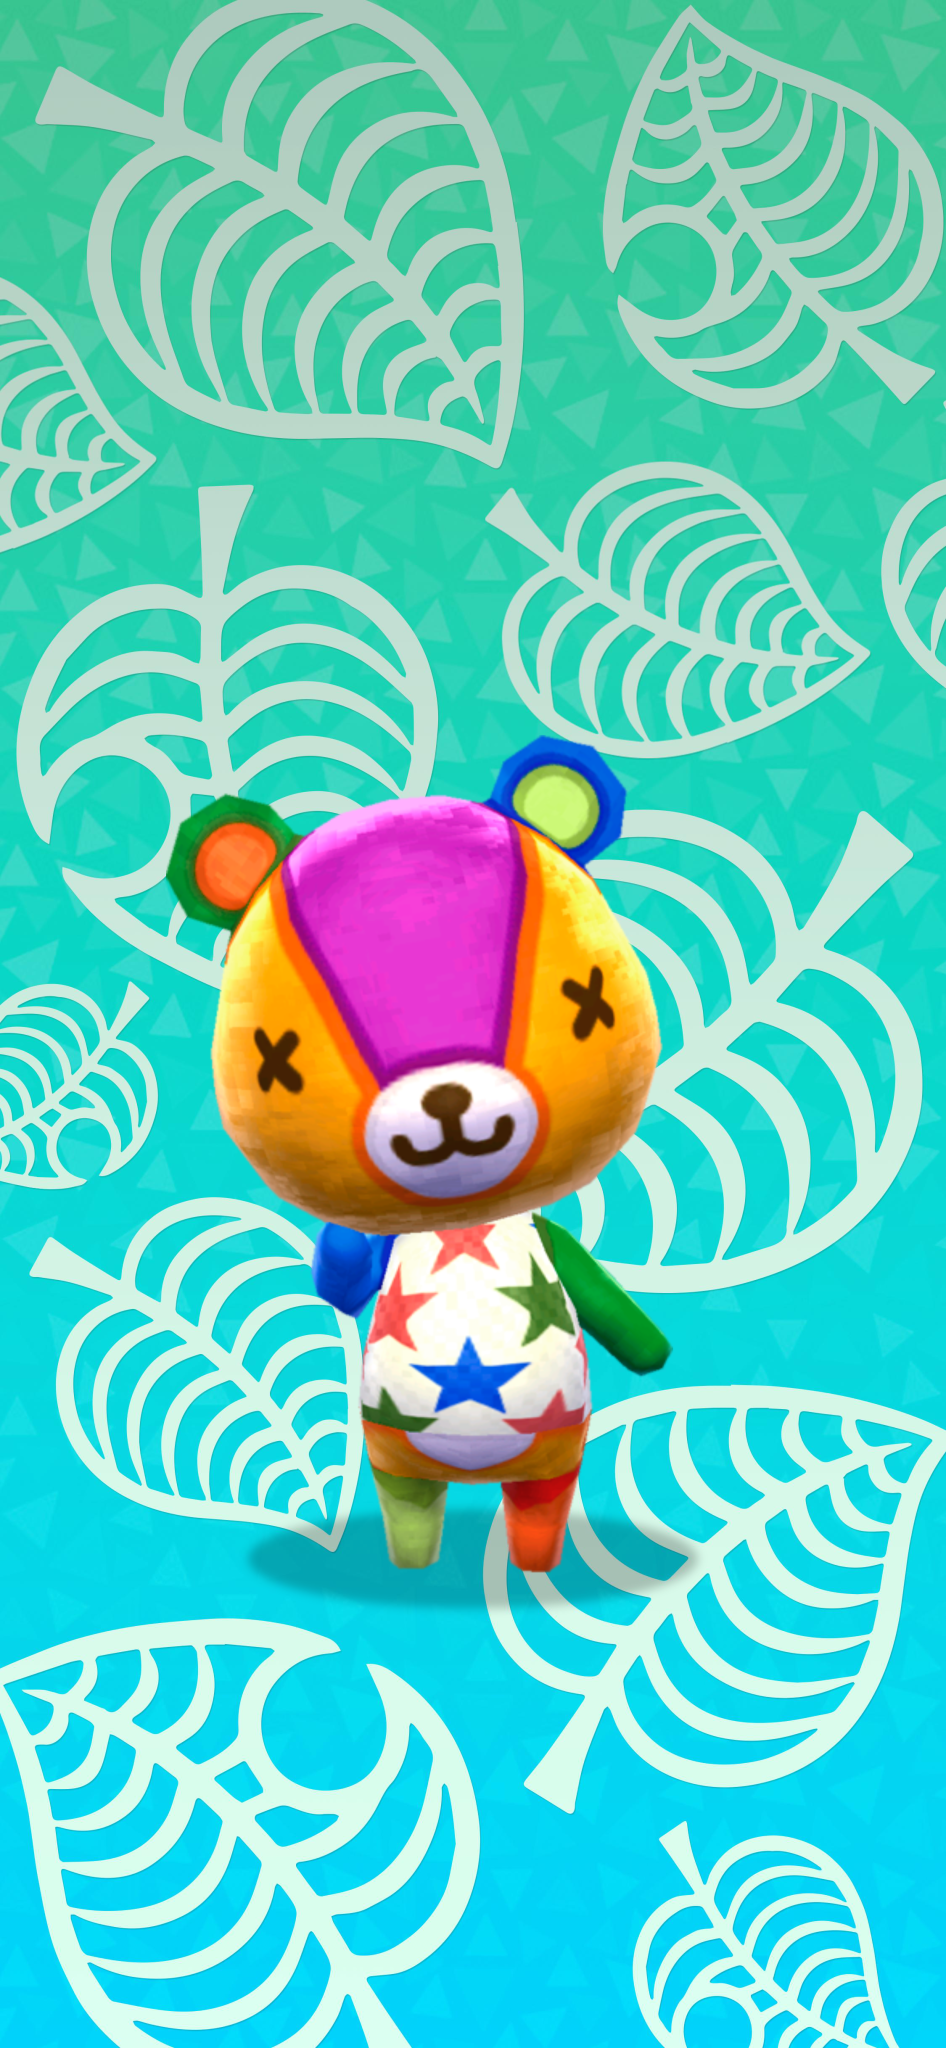 Animal Crossing New Horizons Phone Wallpapers Free For The Community 1 Crossingcharm Animal Crossing Fan Art Animal Crossing Animal Crossing Characters